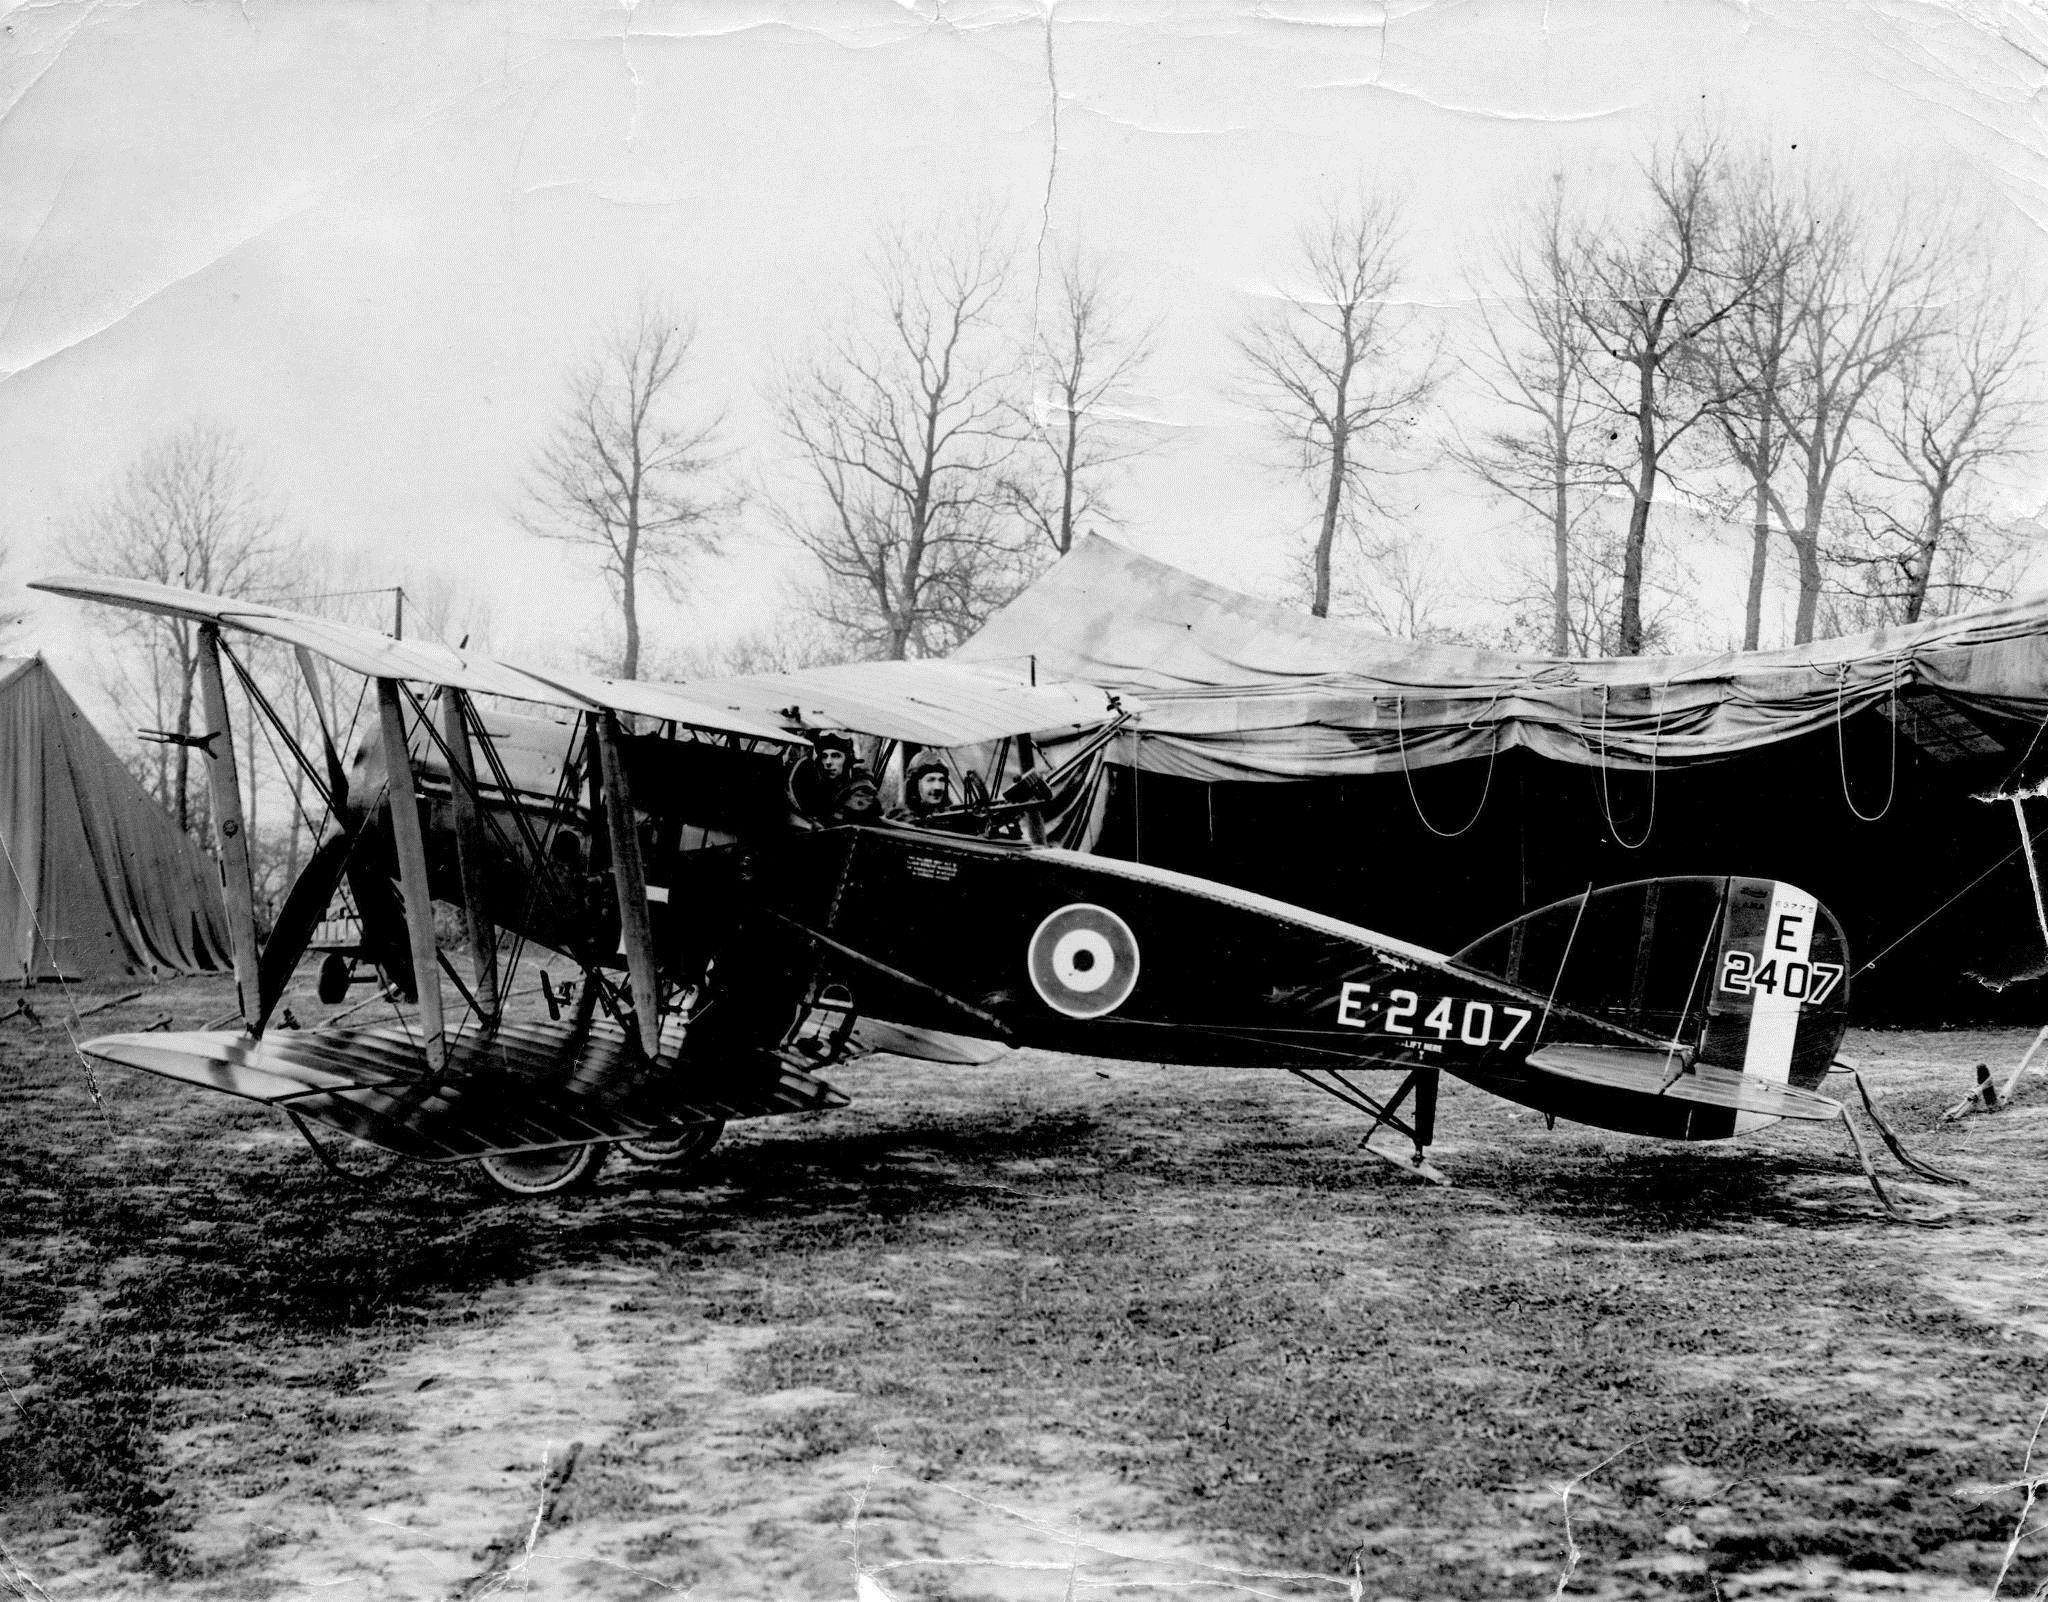 Captain Horace Percy Lale and Lieutenant WH Welsh of the Royal Flying Corps in their two-seater Bristol Fighter plane